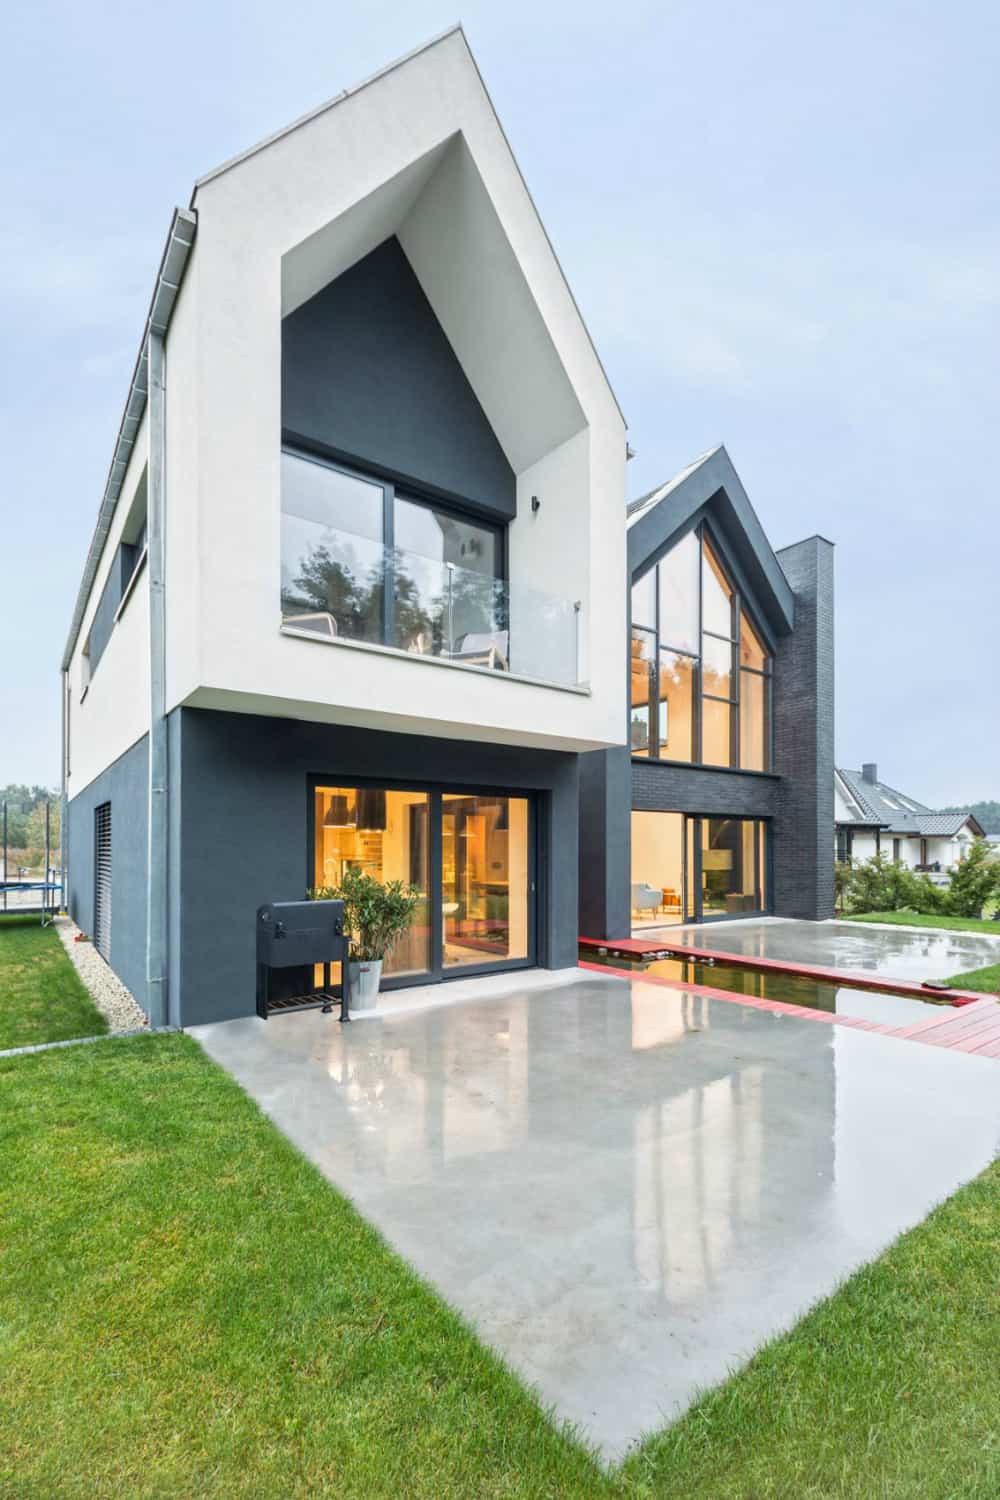 Big pitched roof frames are characteristic of the contemporary architecture